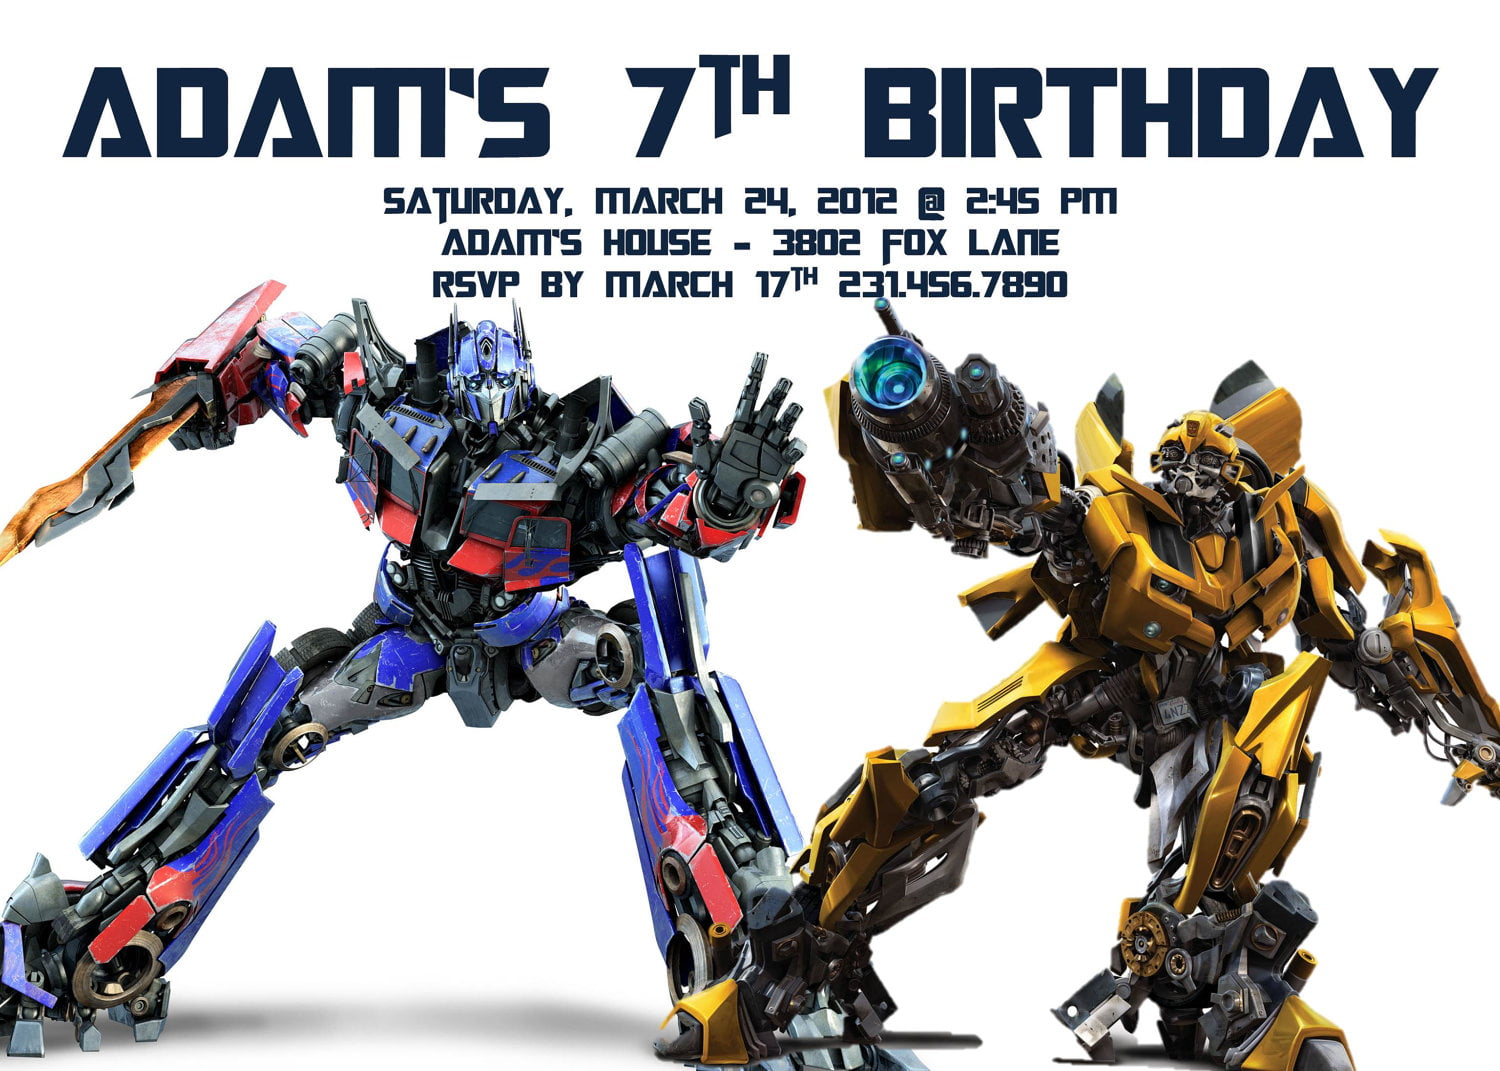 Transformer Birthday Invitations is one of our best ideas you might choose for invitation design